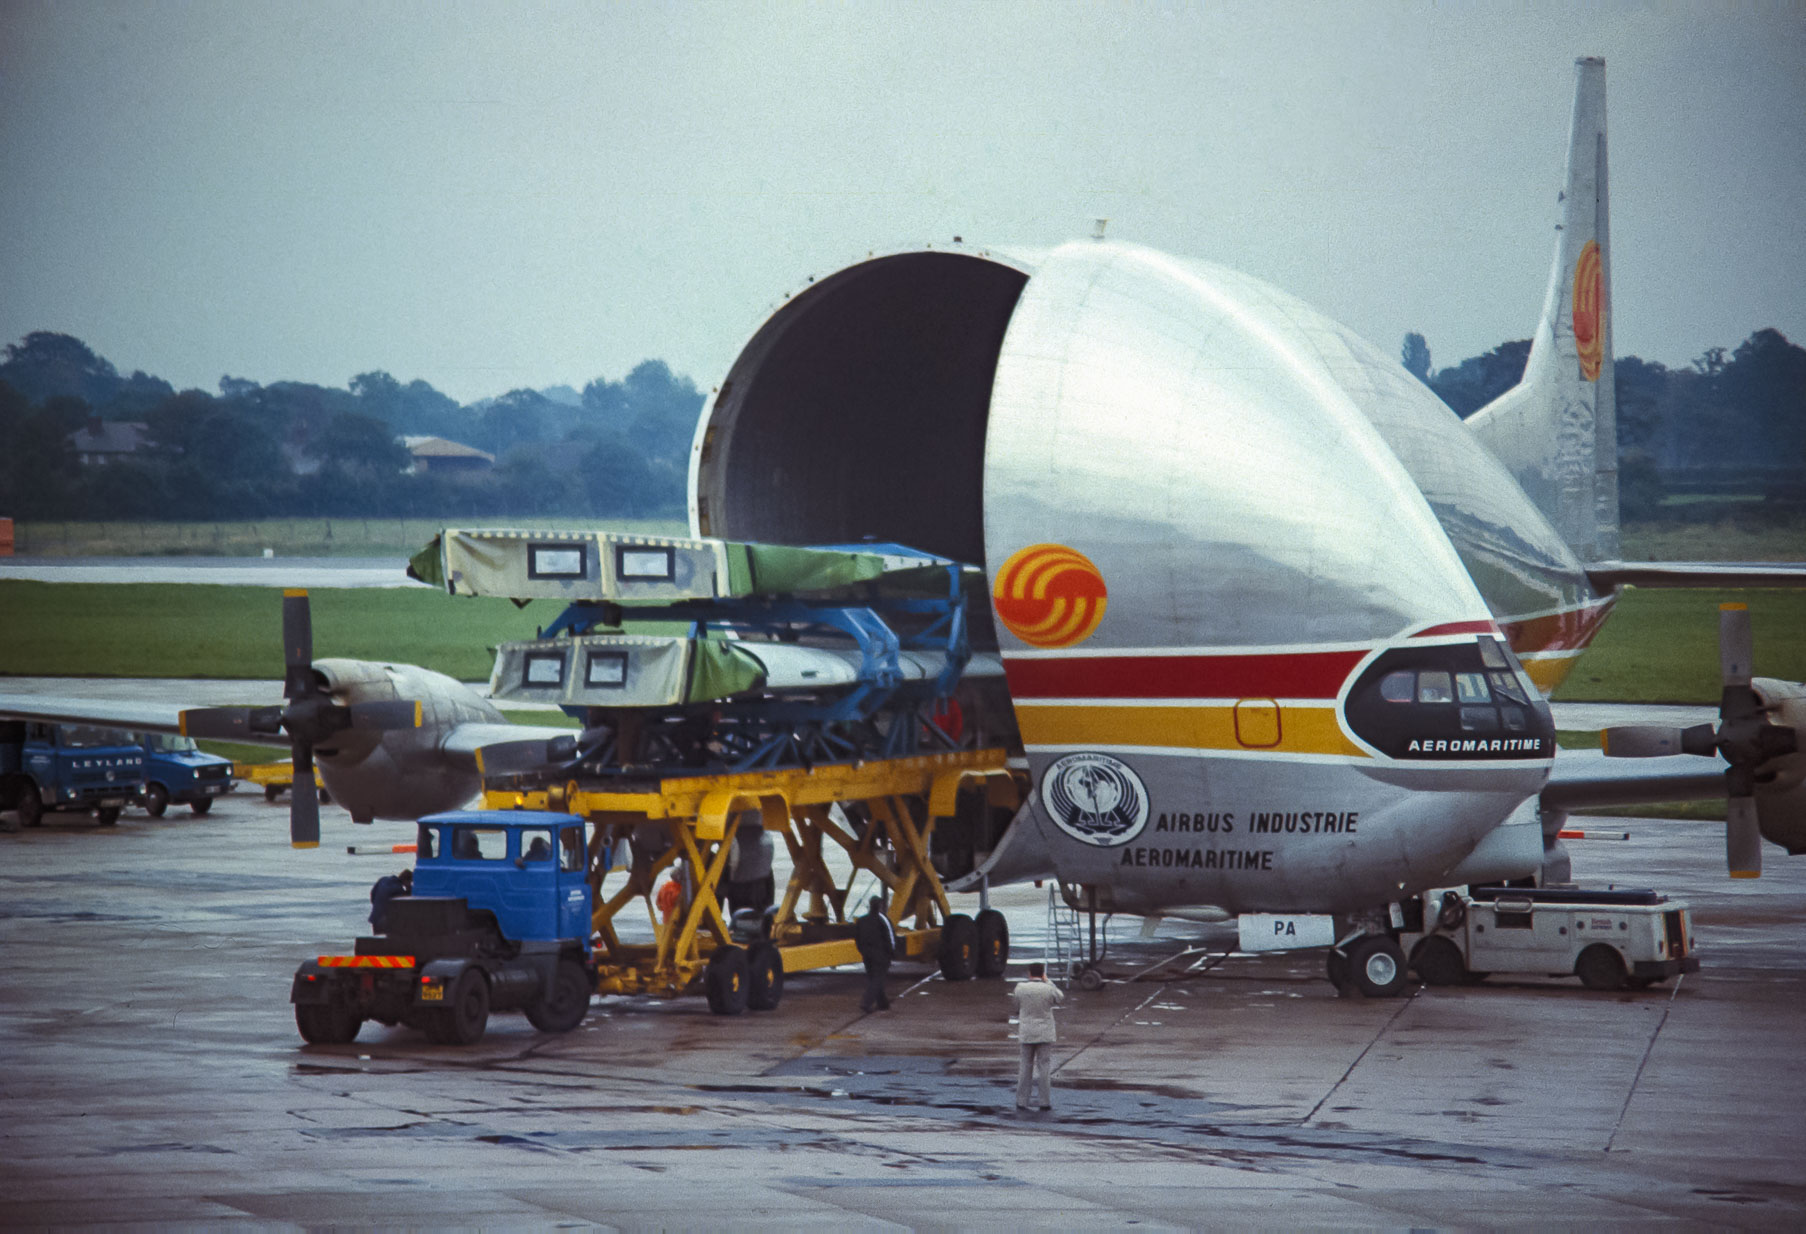 Aeromaritime Guppy being loaded